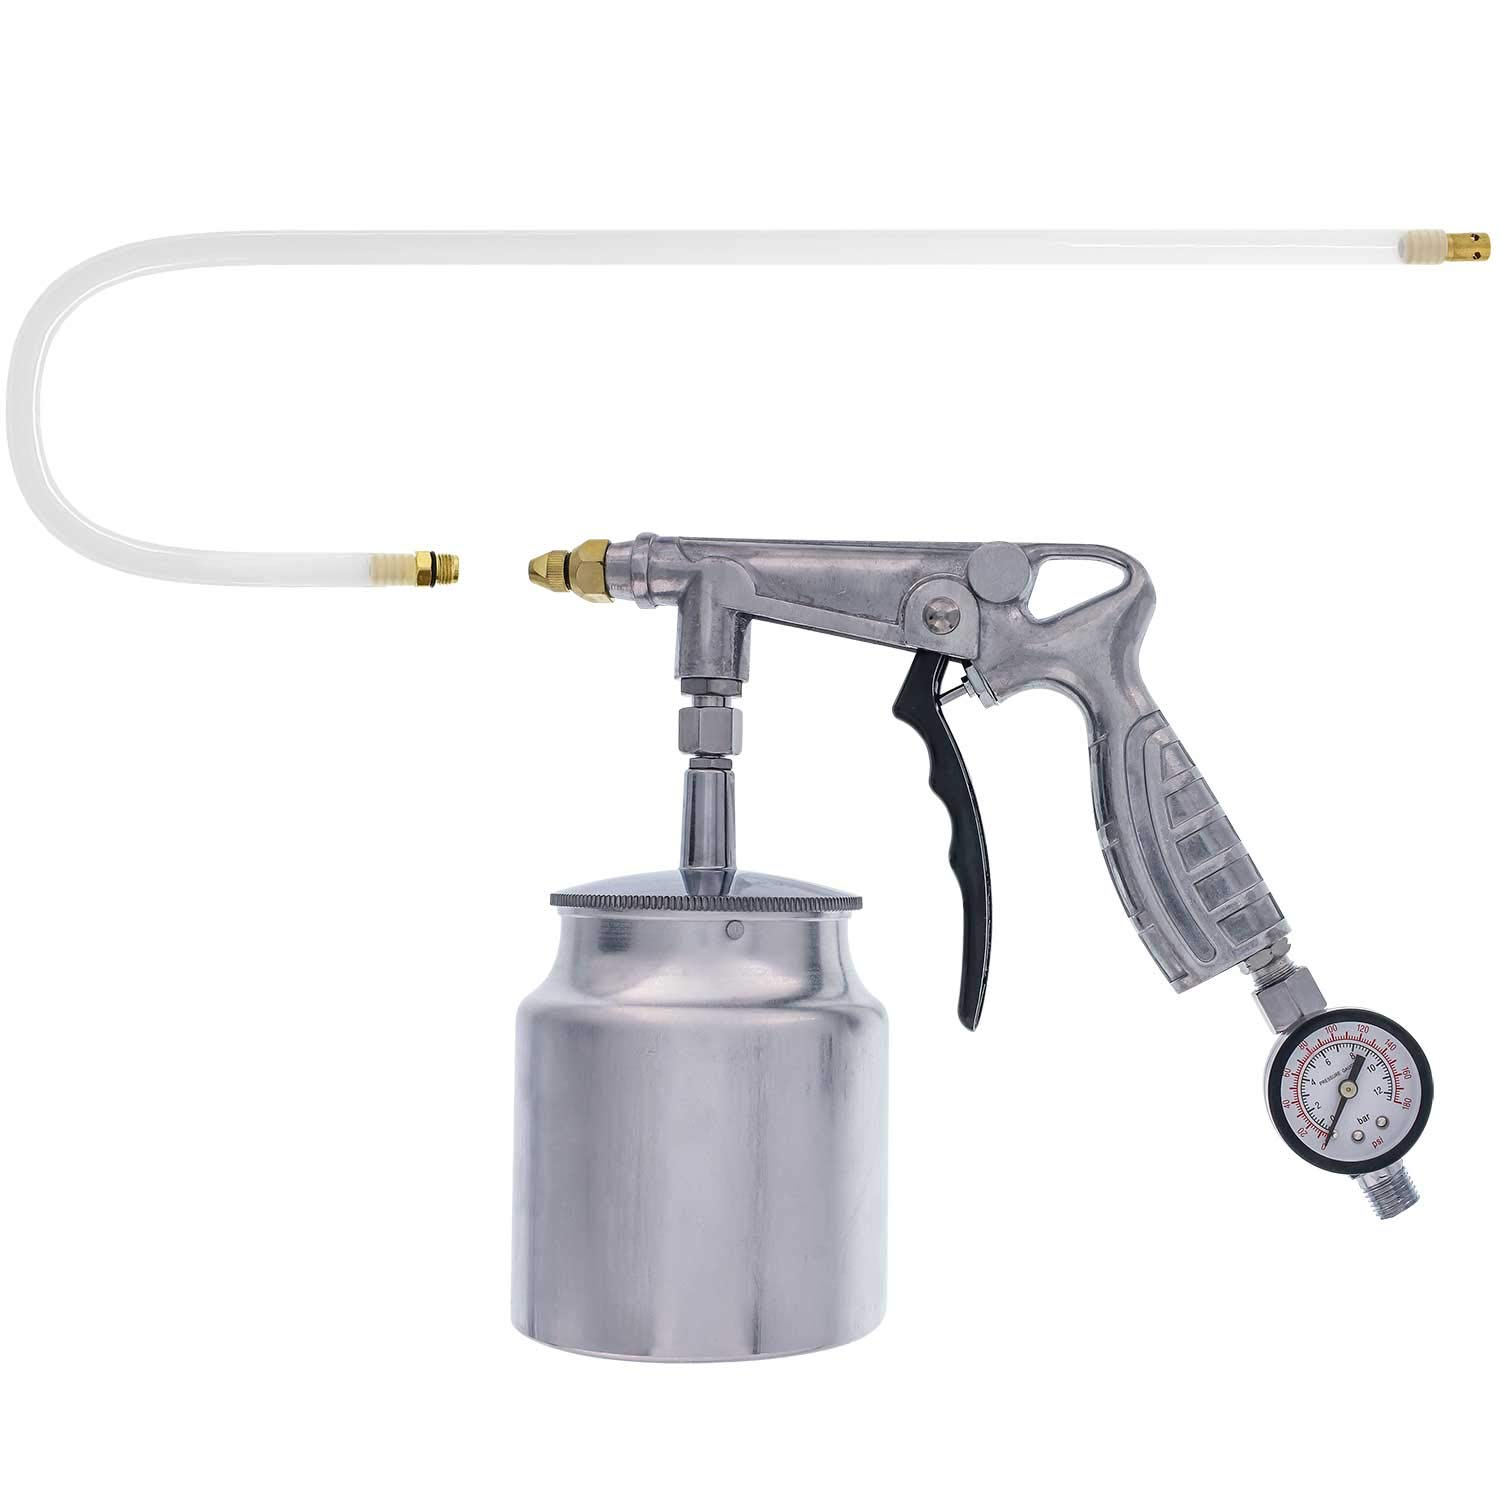 TCP Global Air Rust Proofing and Undercoating Gun with Gauge & Suction Feed Cup - Includes 22'' Long Flexible Extension Wand with Multi-Directional Nozzle - Spray Truck Bed Liner, Rubberized Undercoat